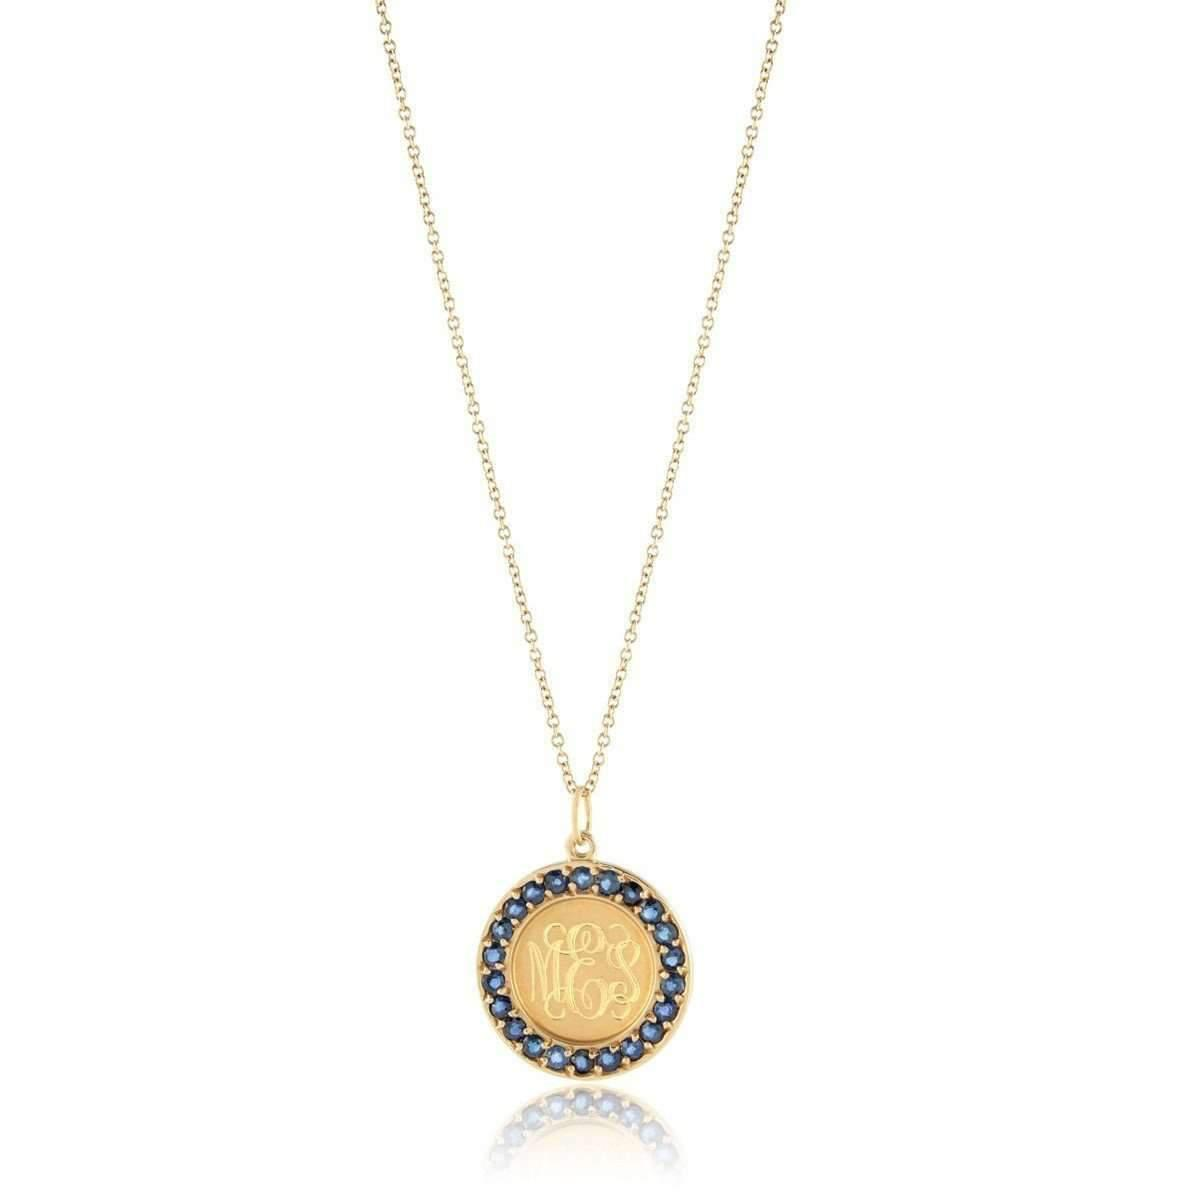 Emily & Ashley Classic Charm Disc with Blue Sapphires Necklace Jtd832X